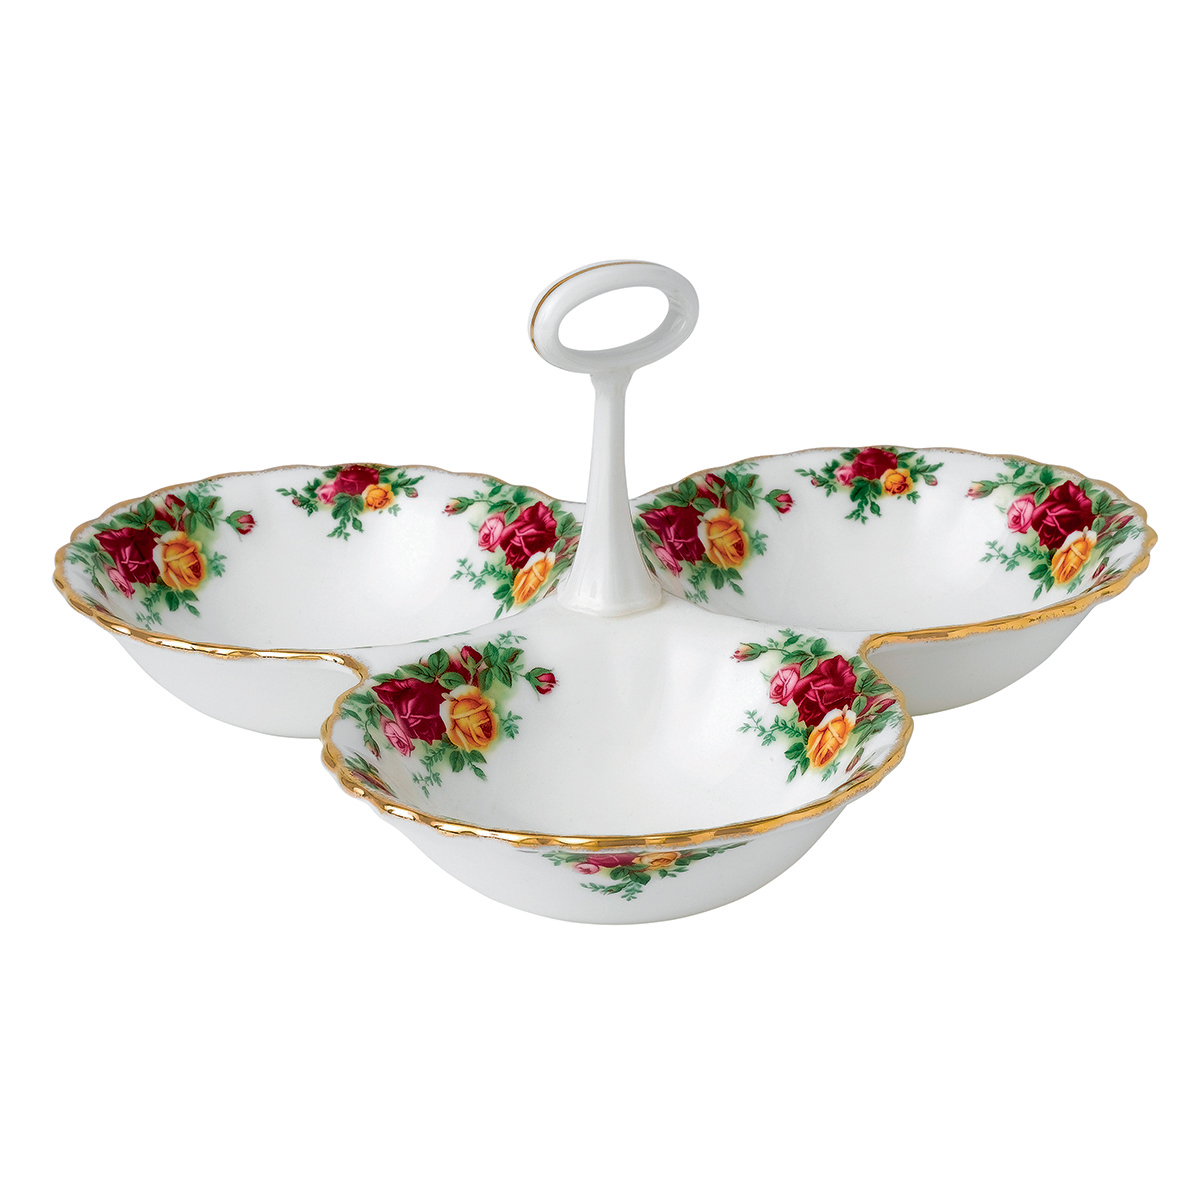 Old Country Roses Divided Tray By Royal Albert